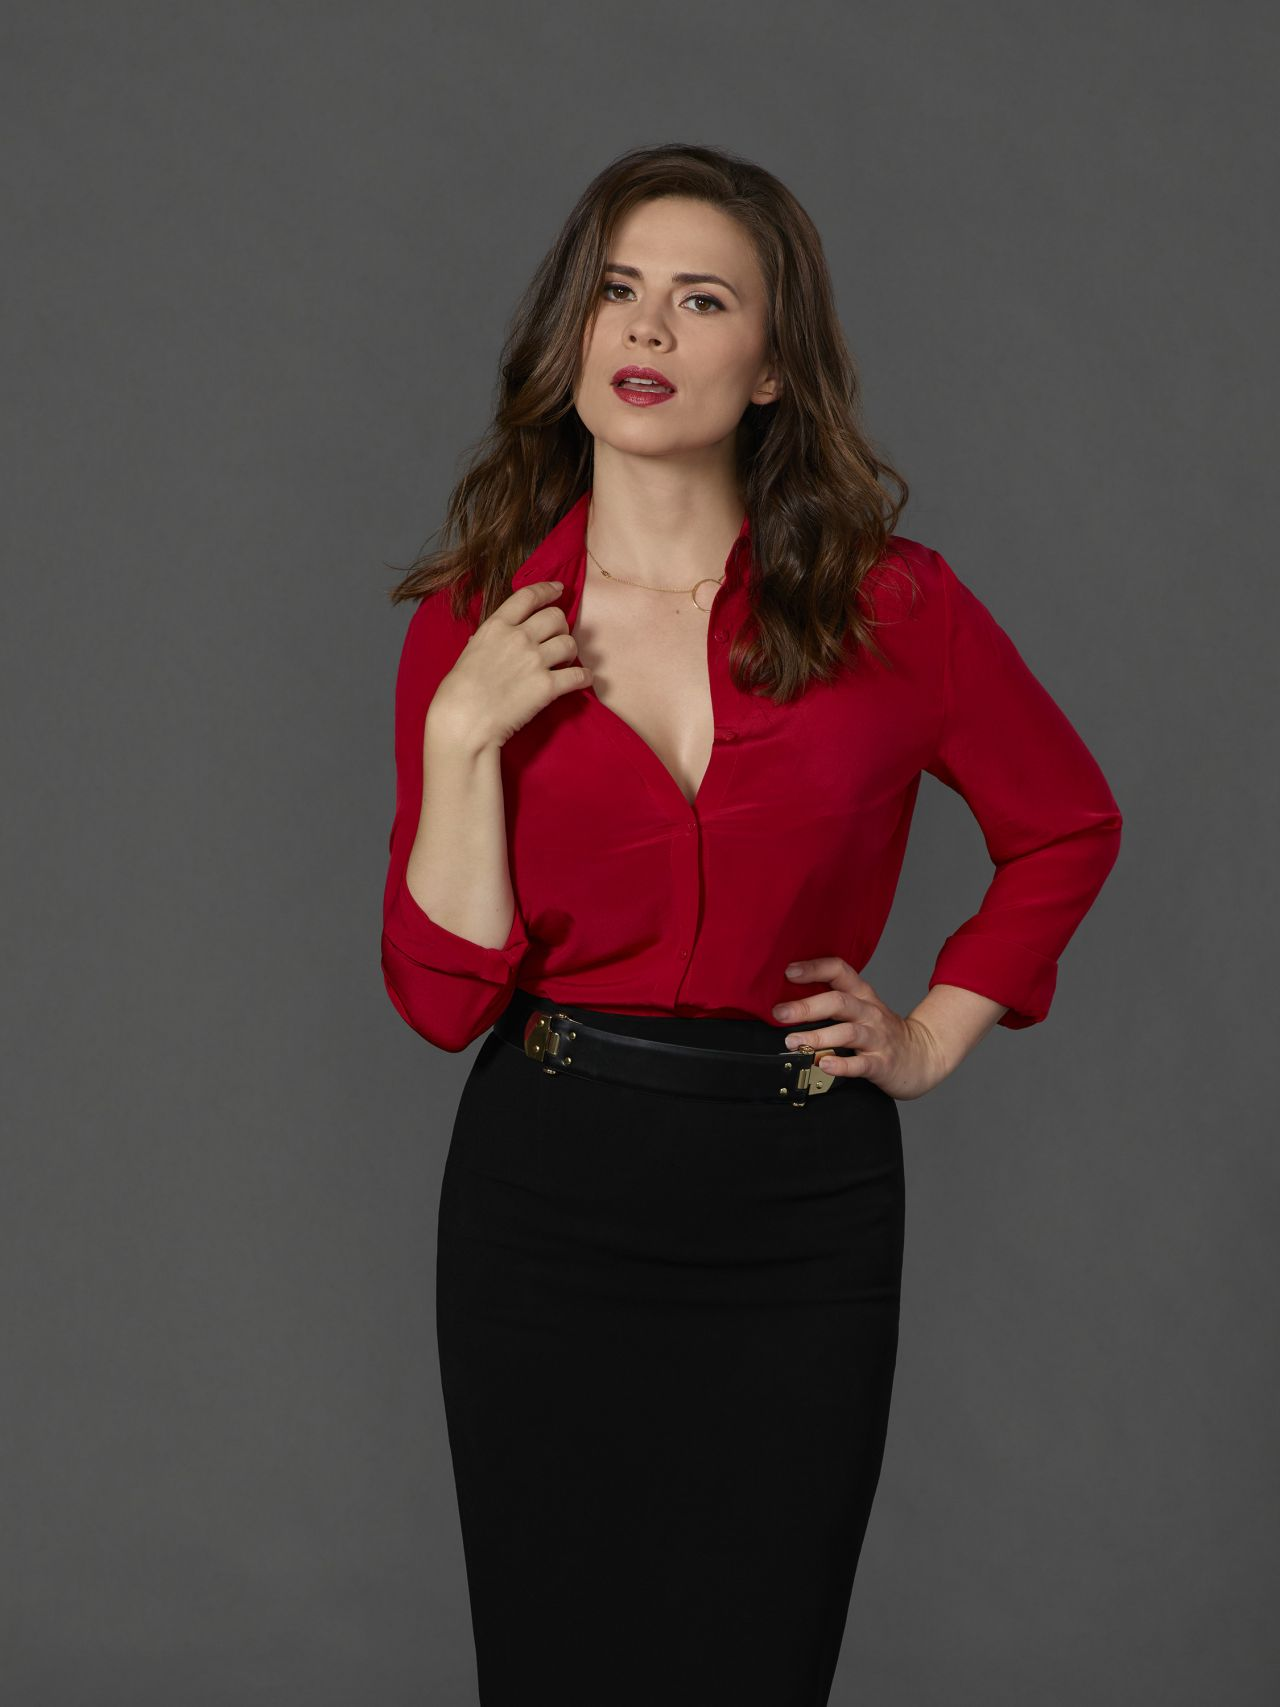 Hayley Atwell Conviction Posters Promos And Stills